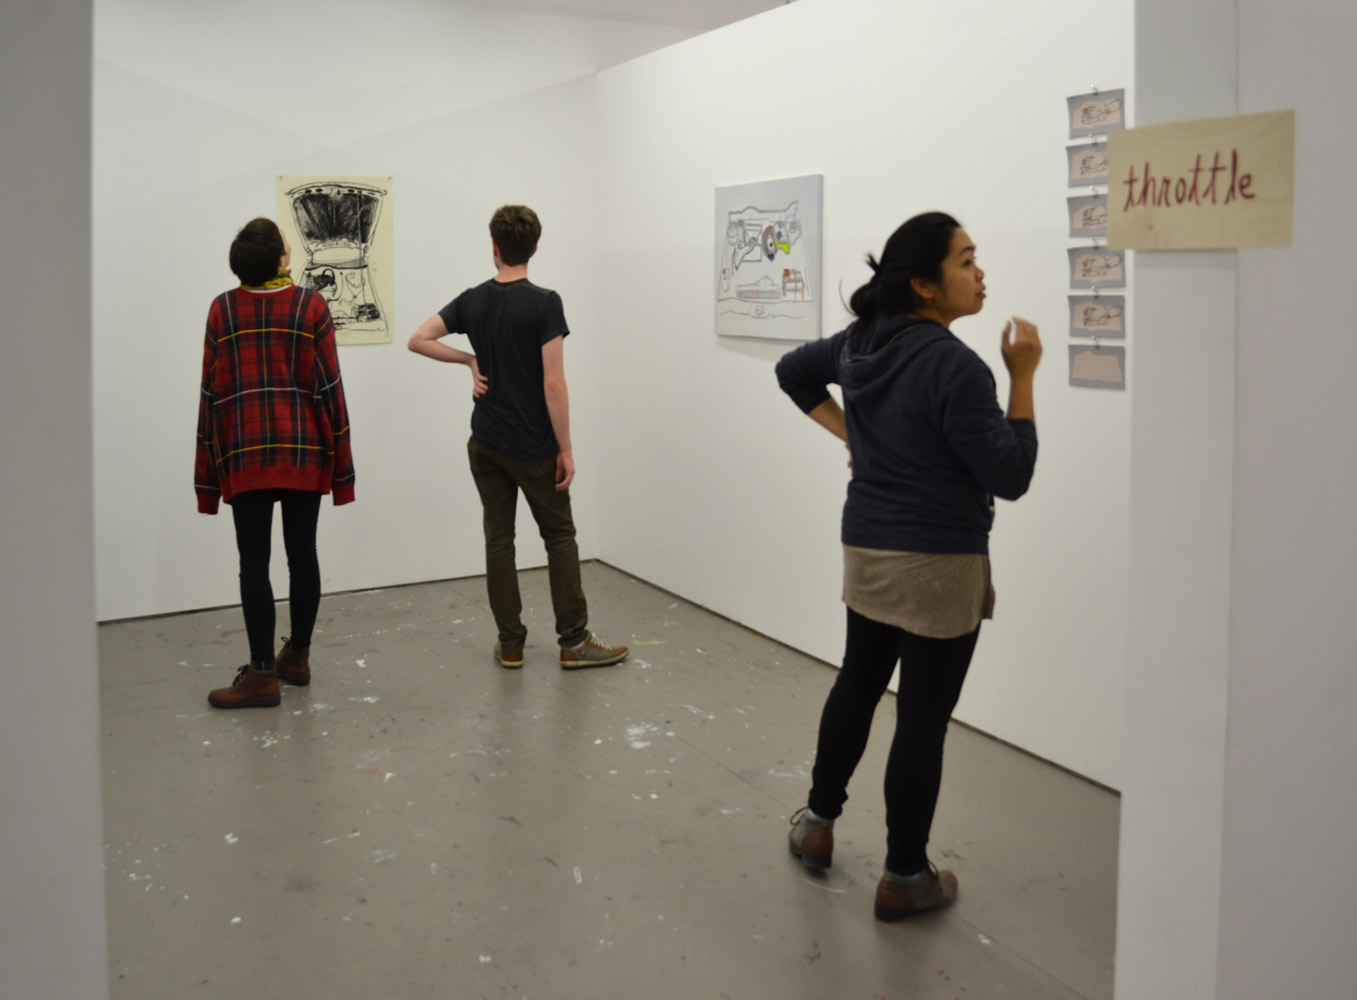 I distributed the exhibition invitations to Billy, Jacob, and Cara,who were also up late working in their studios that night.  I urged them to visit the show,which would be ready in just 10 minutes.